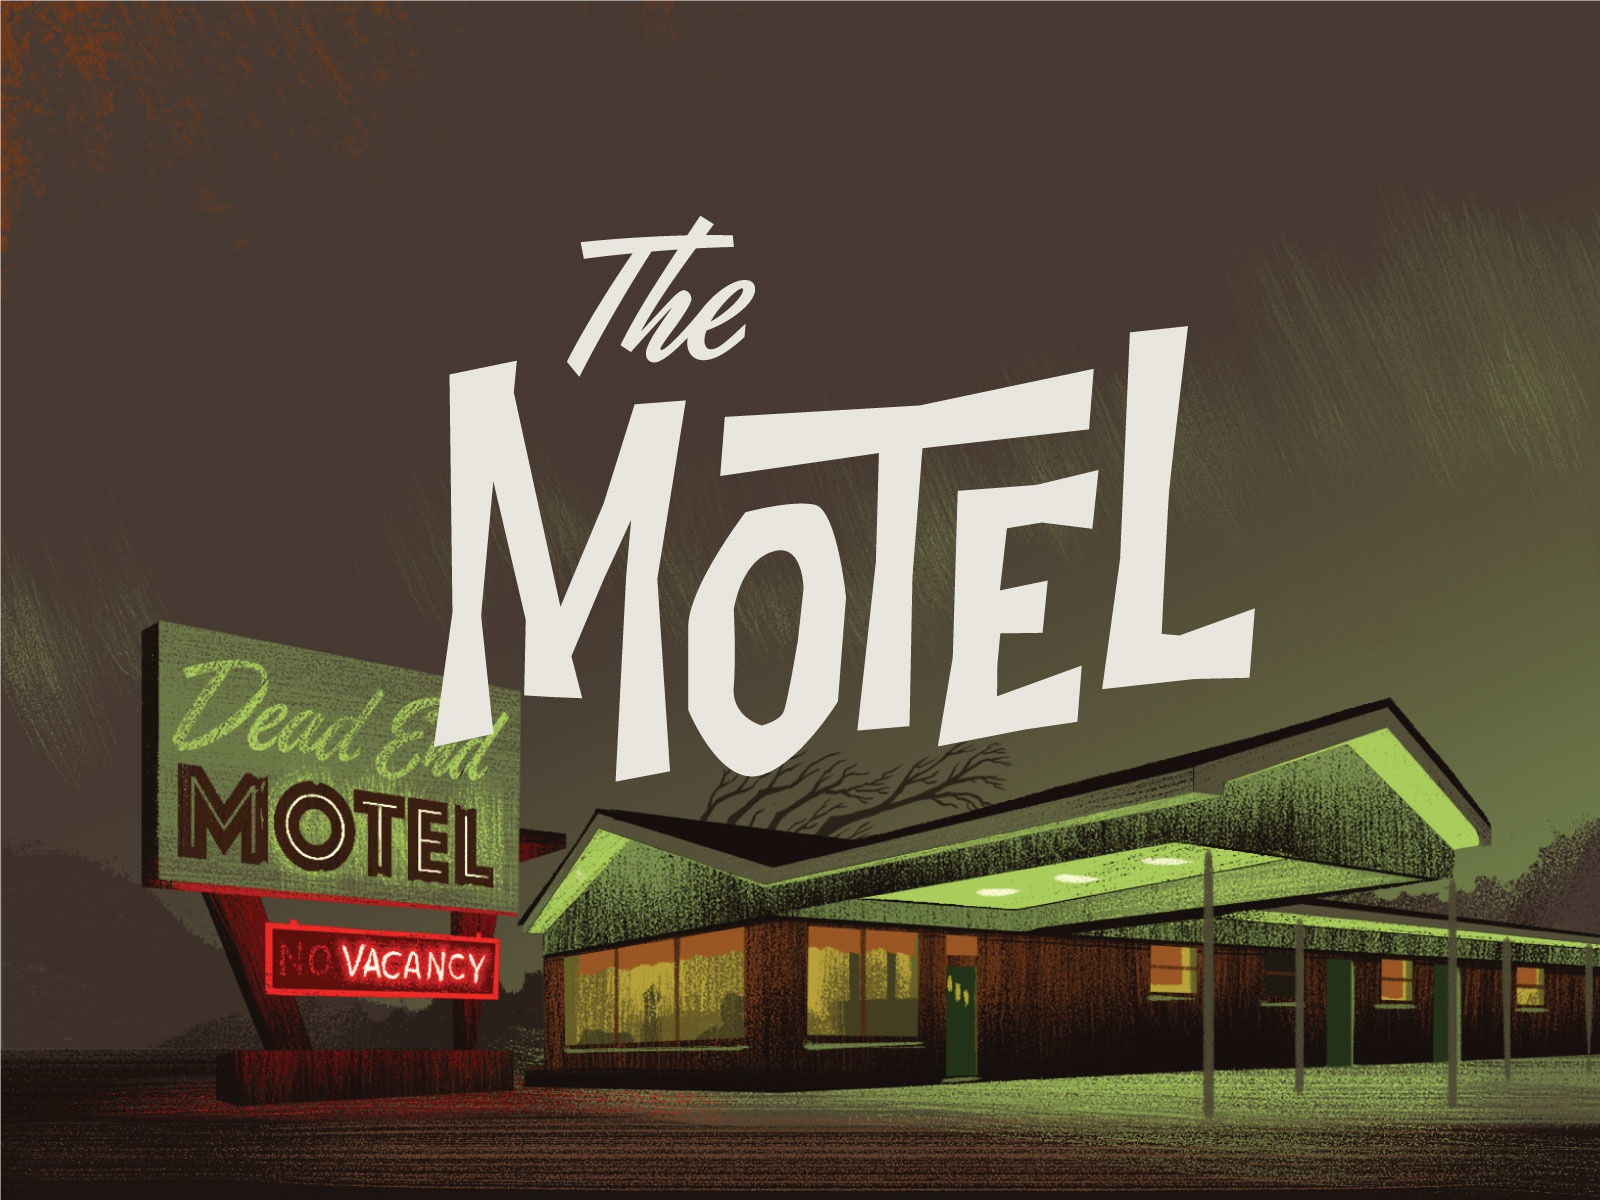 Campy Creatures Locations (4/9) - The Motel horror card game boardgame motel game art pulp art illustration